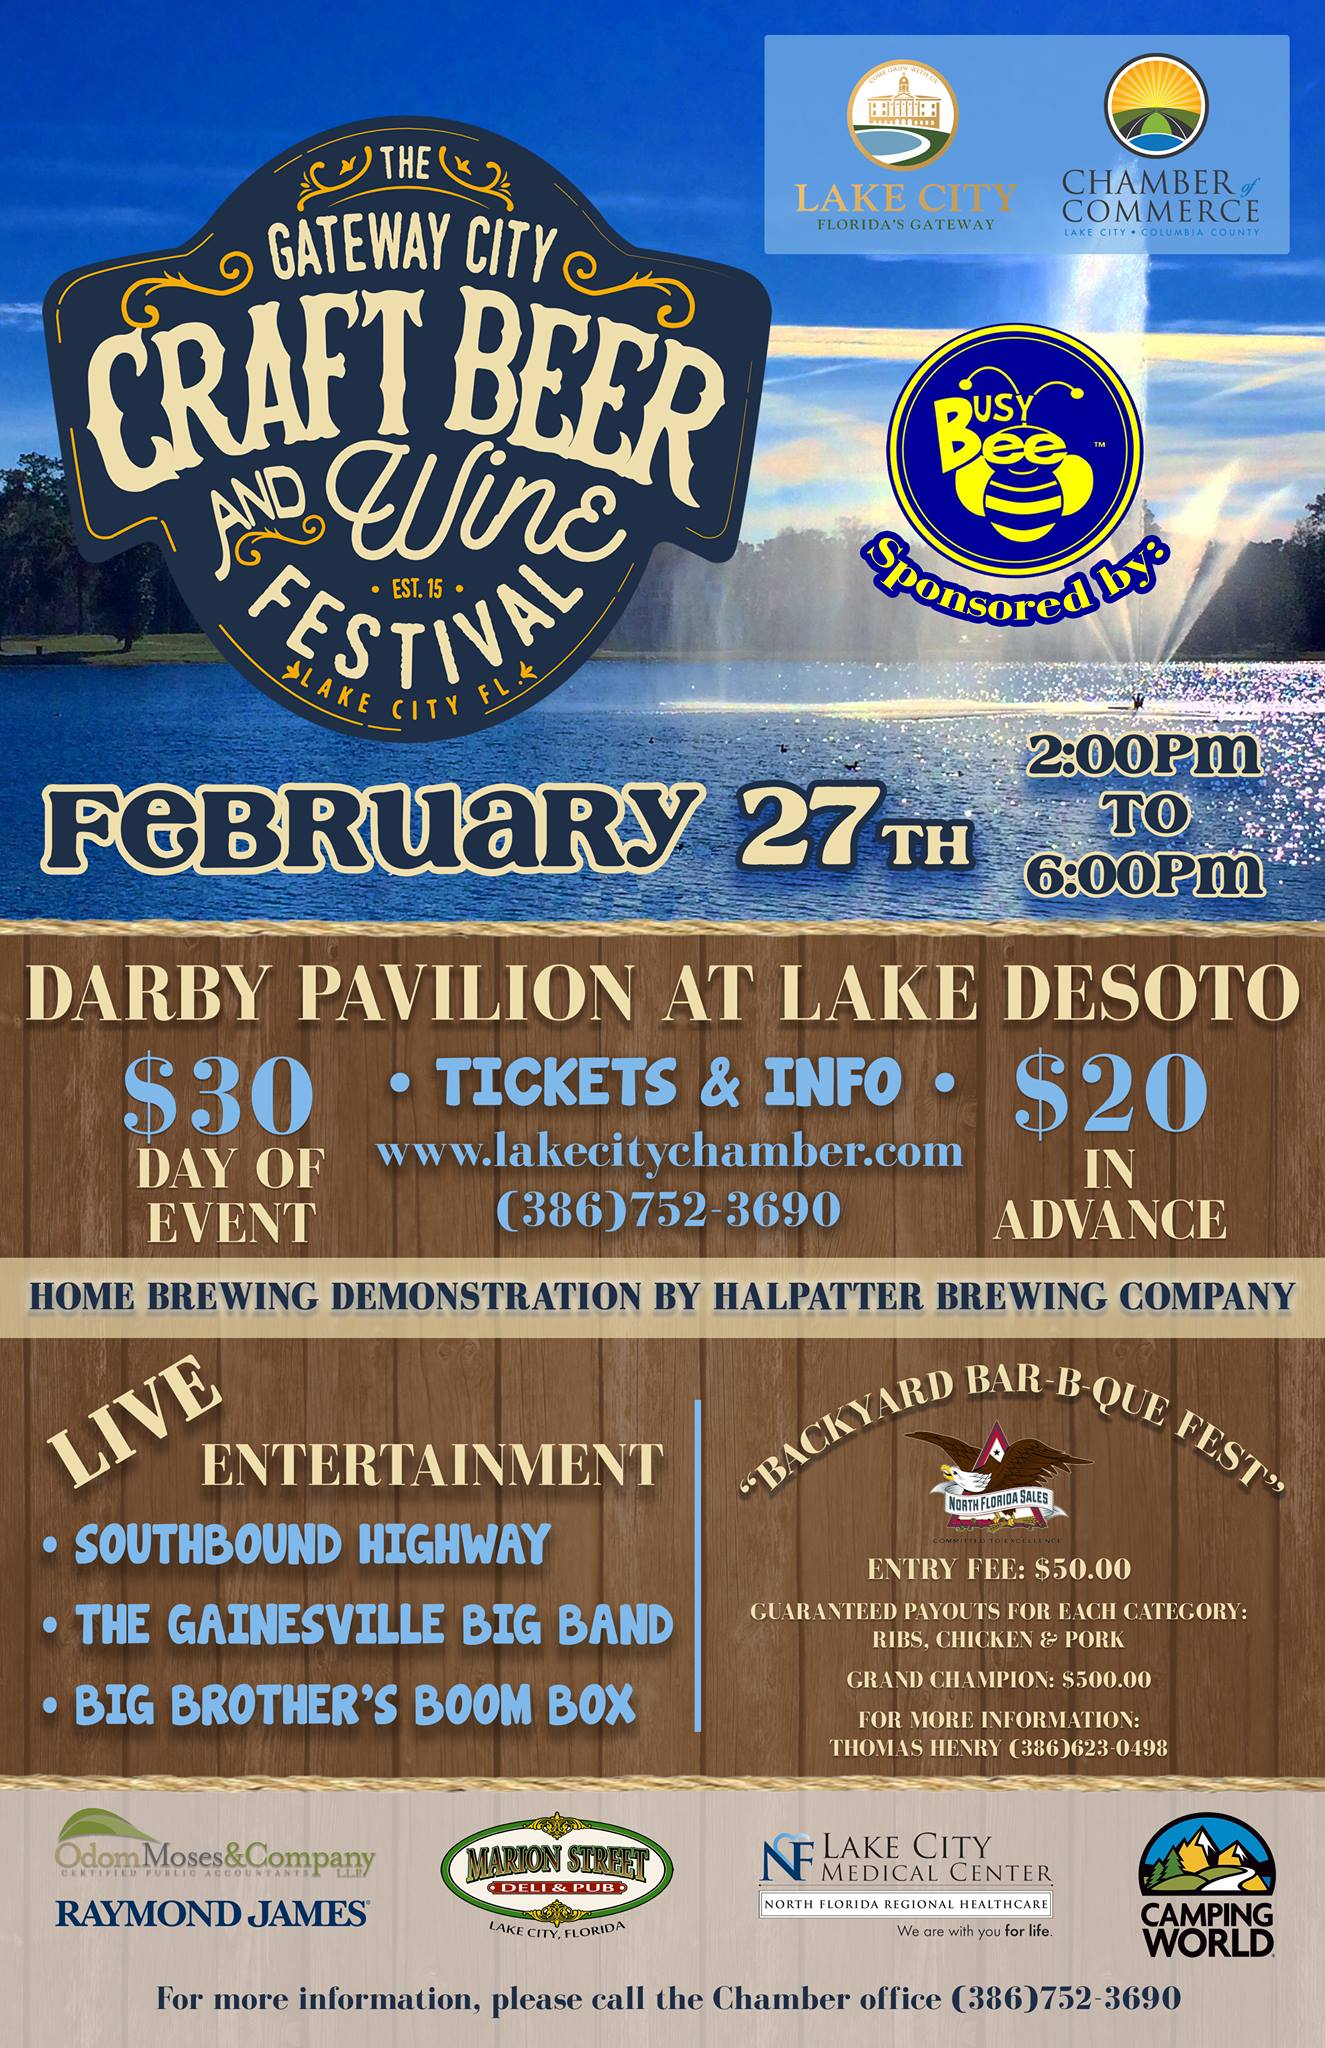 The Gateway City Craft Beer and Wine Festival